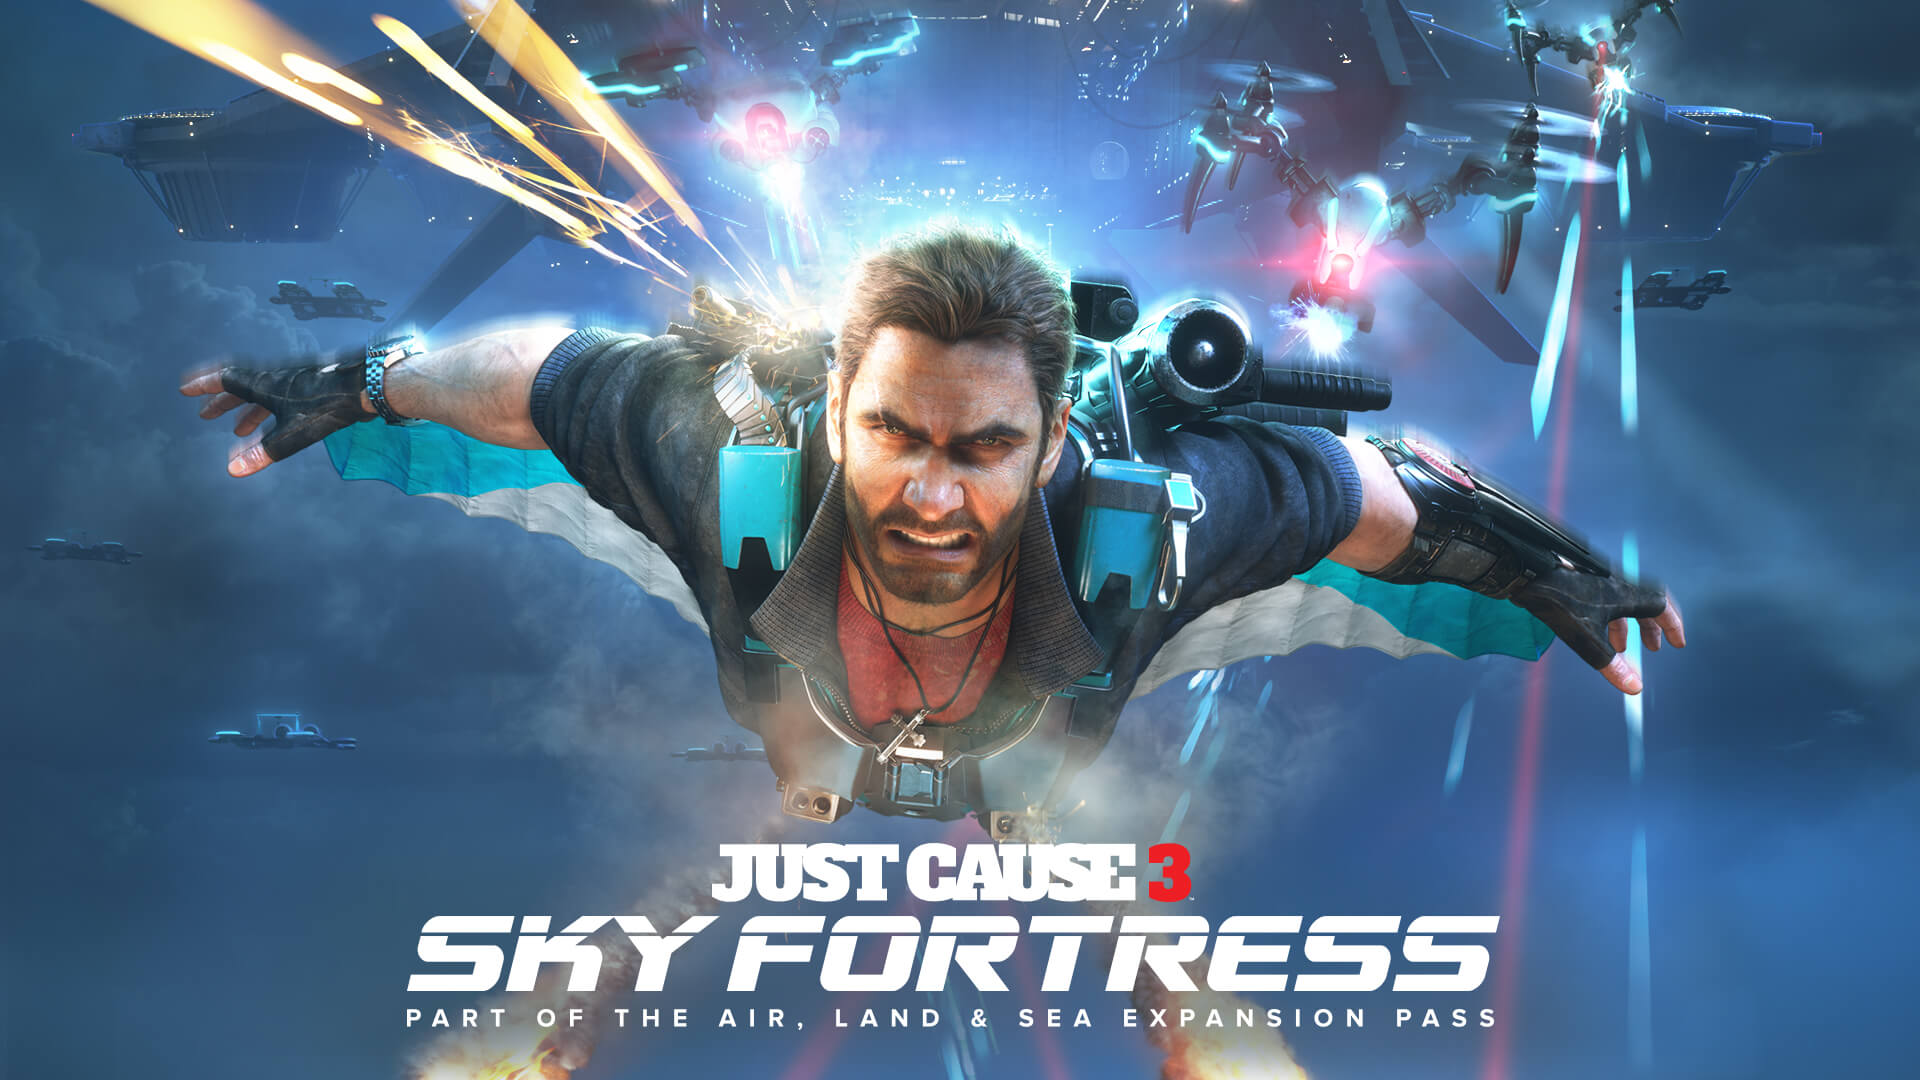 Just Cause 3: Sky Fortress Looks Plain Wild